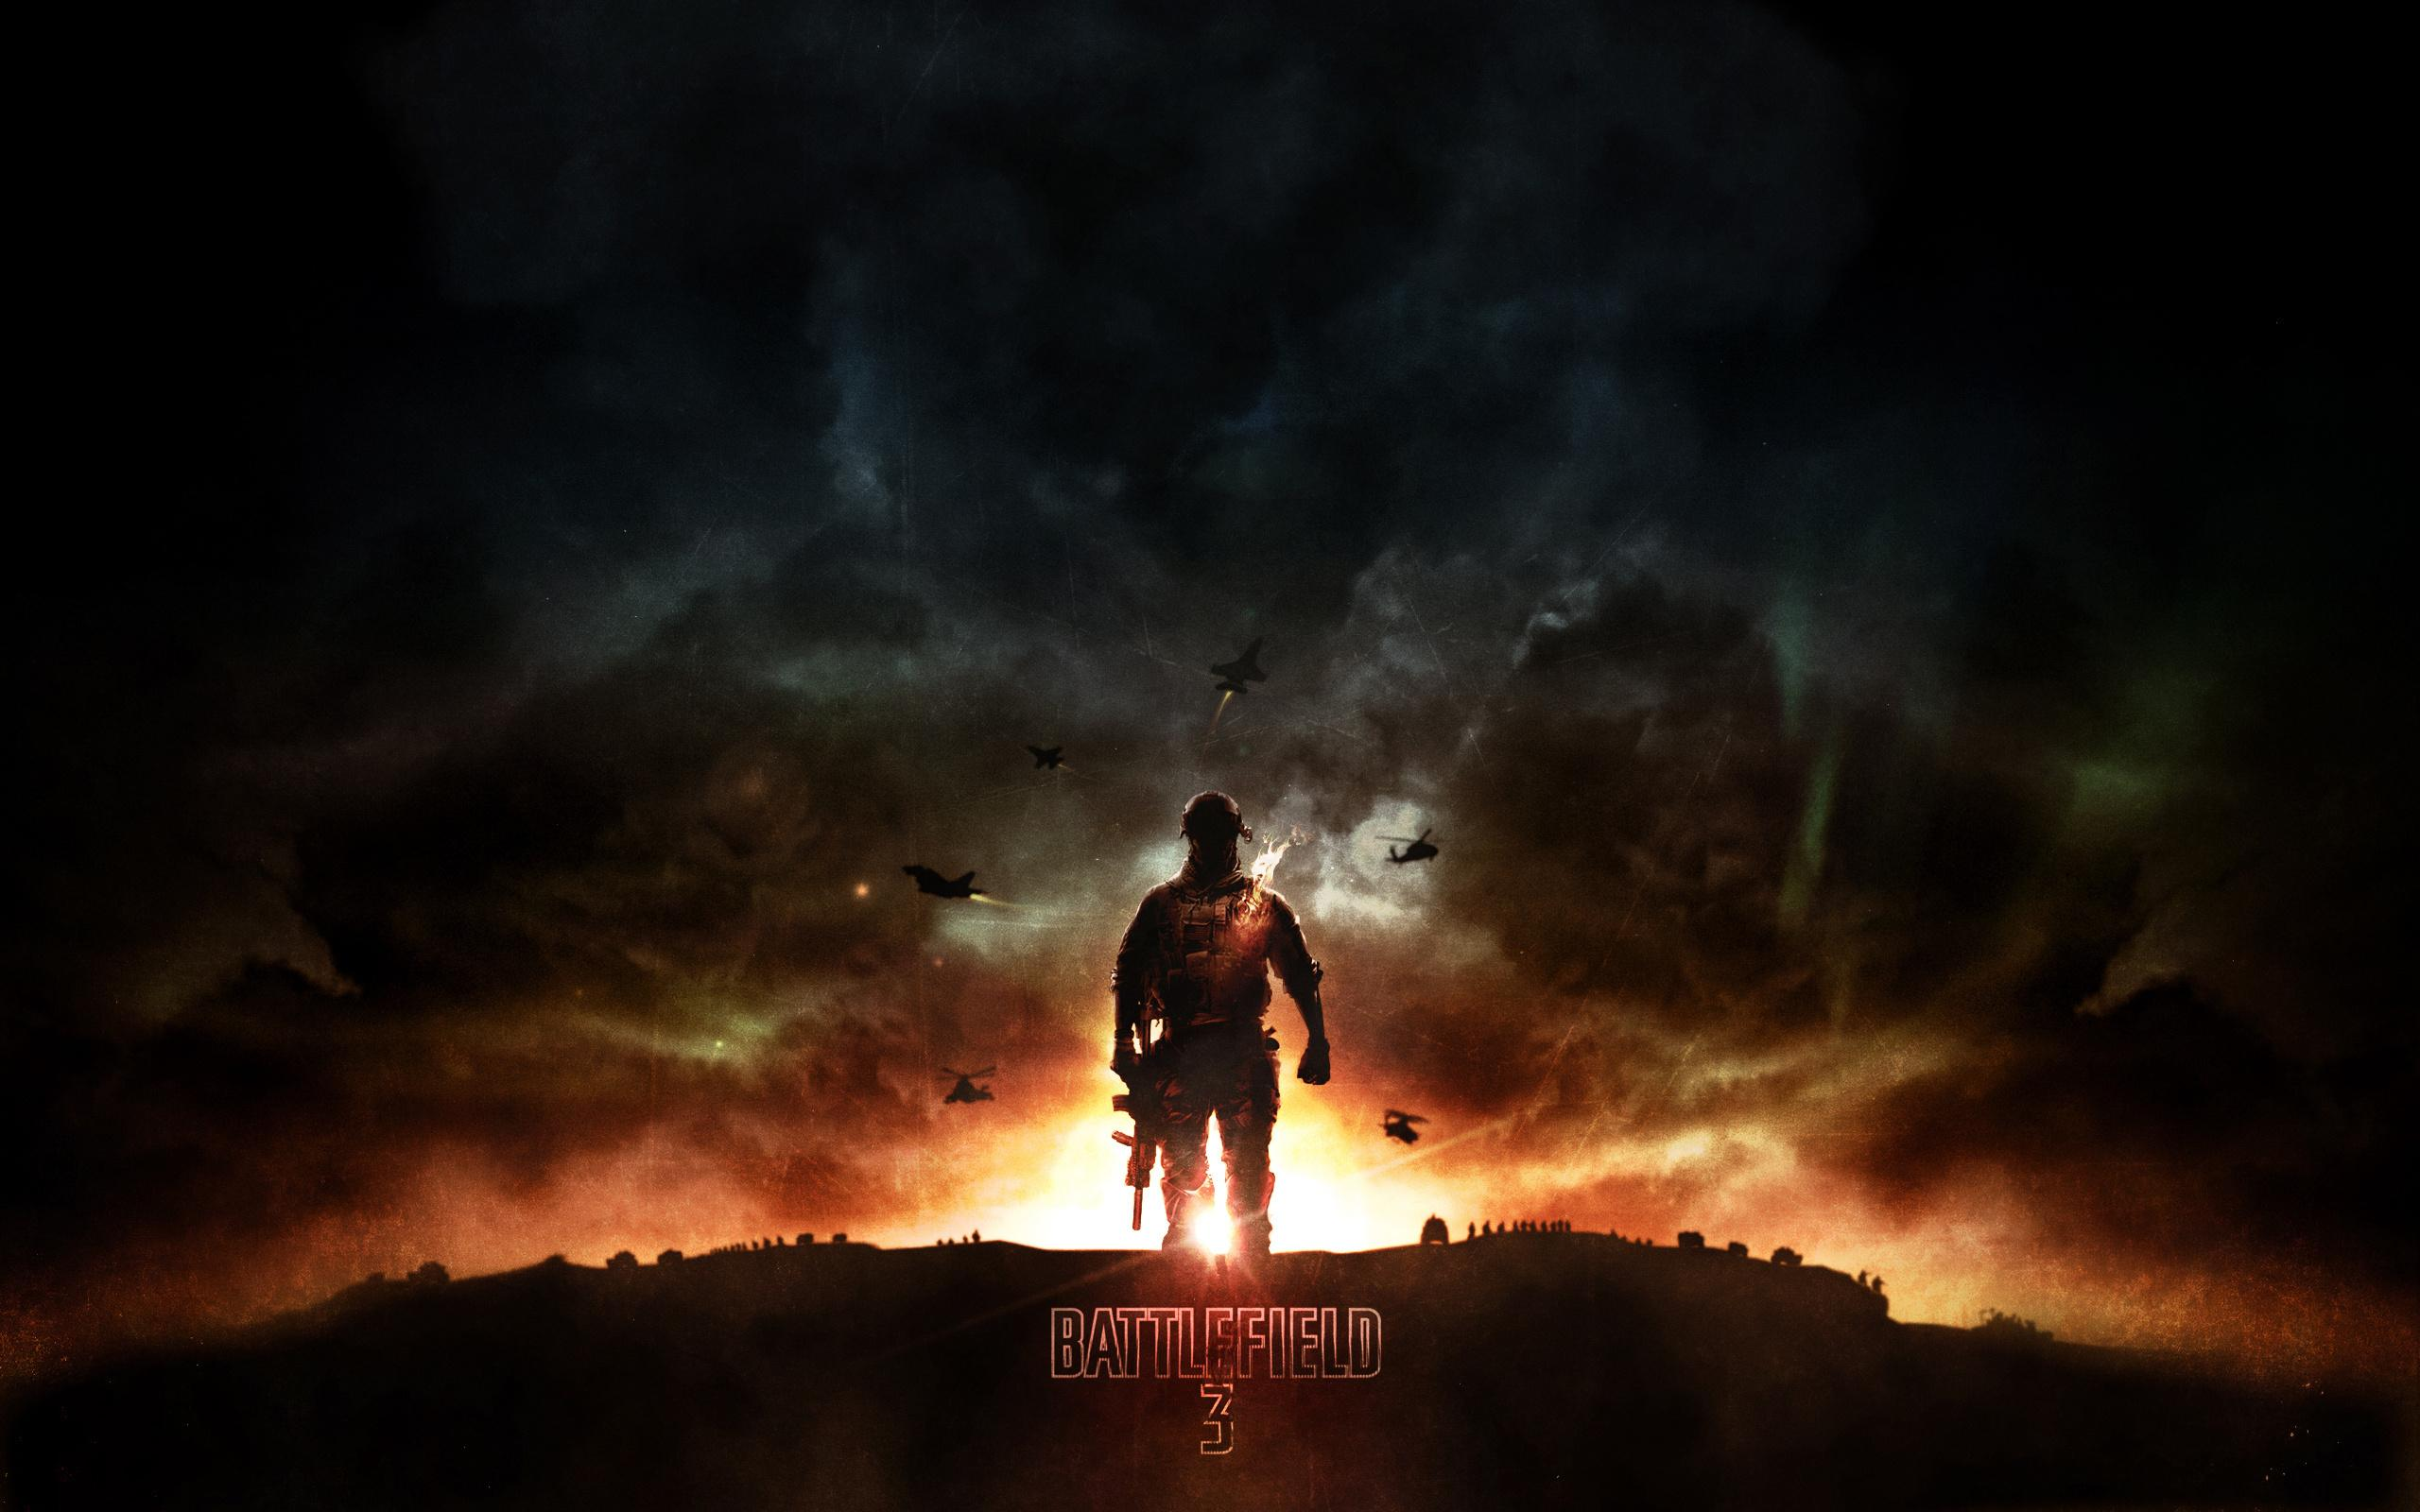 battlefield-3-game-poster-and-hd-wallpaper-sunset-in-the-game.jpg (2560×1600)